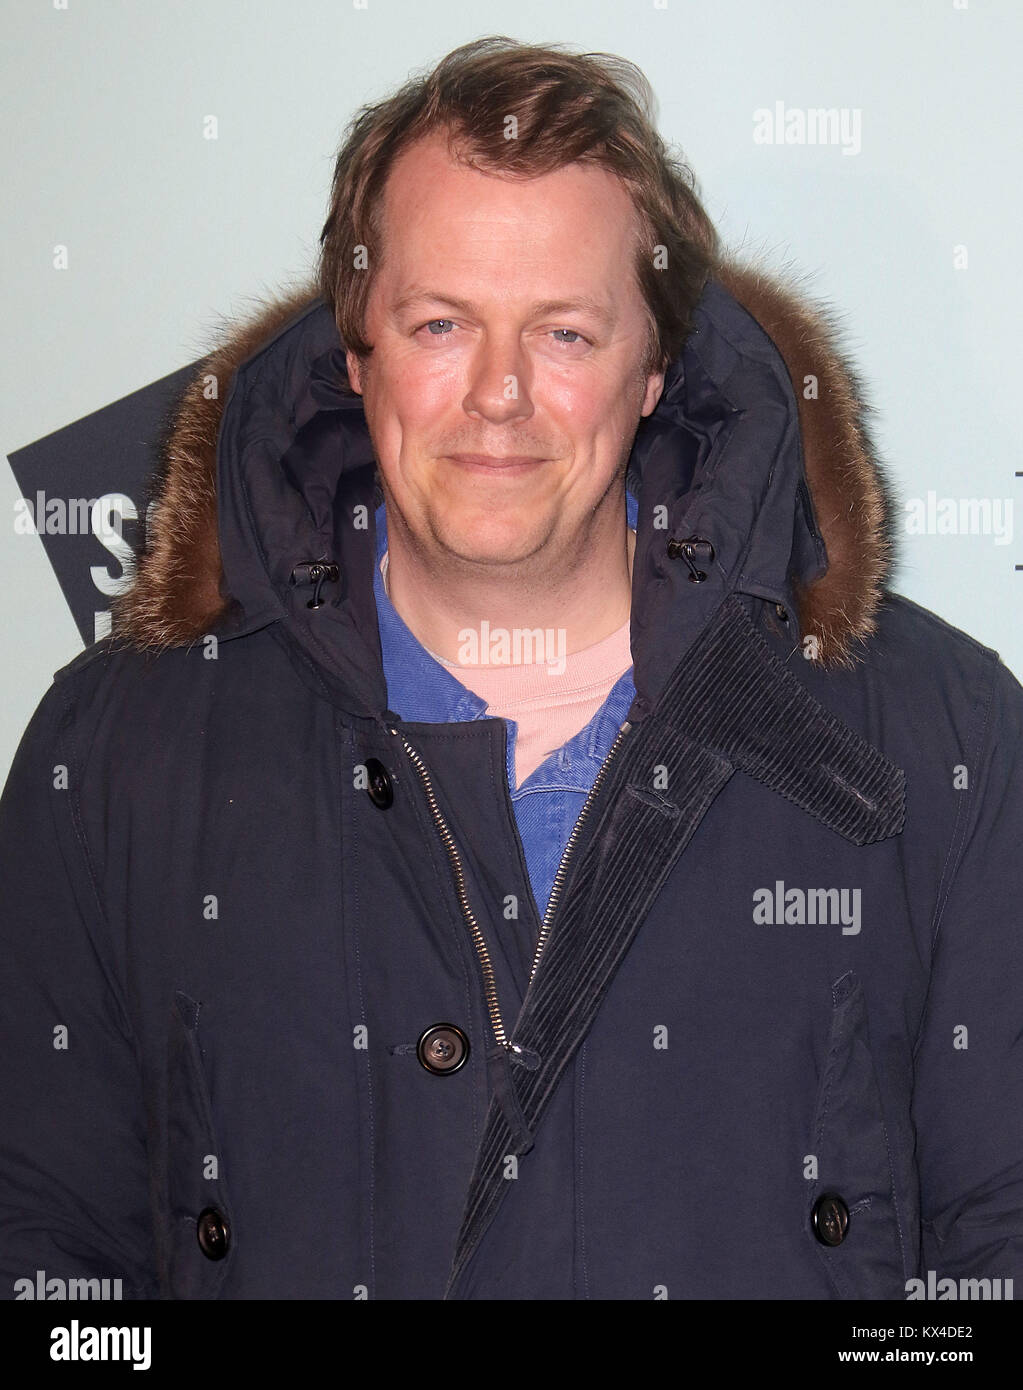 Nov 14, 2017 - Tom Parker Bowles attending Skate At Somerset House With Fortnum & Mason VIP Launch, Somerset - Stock Image